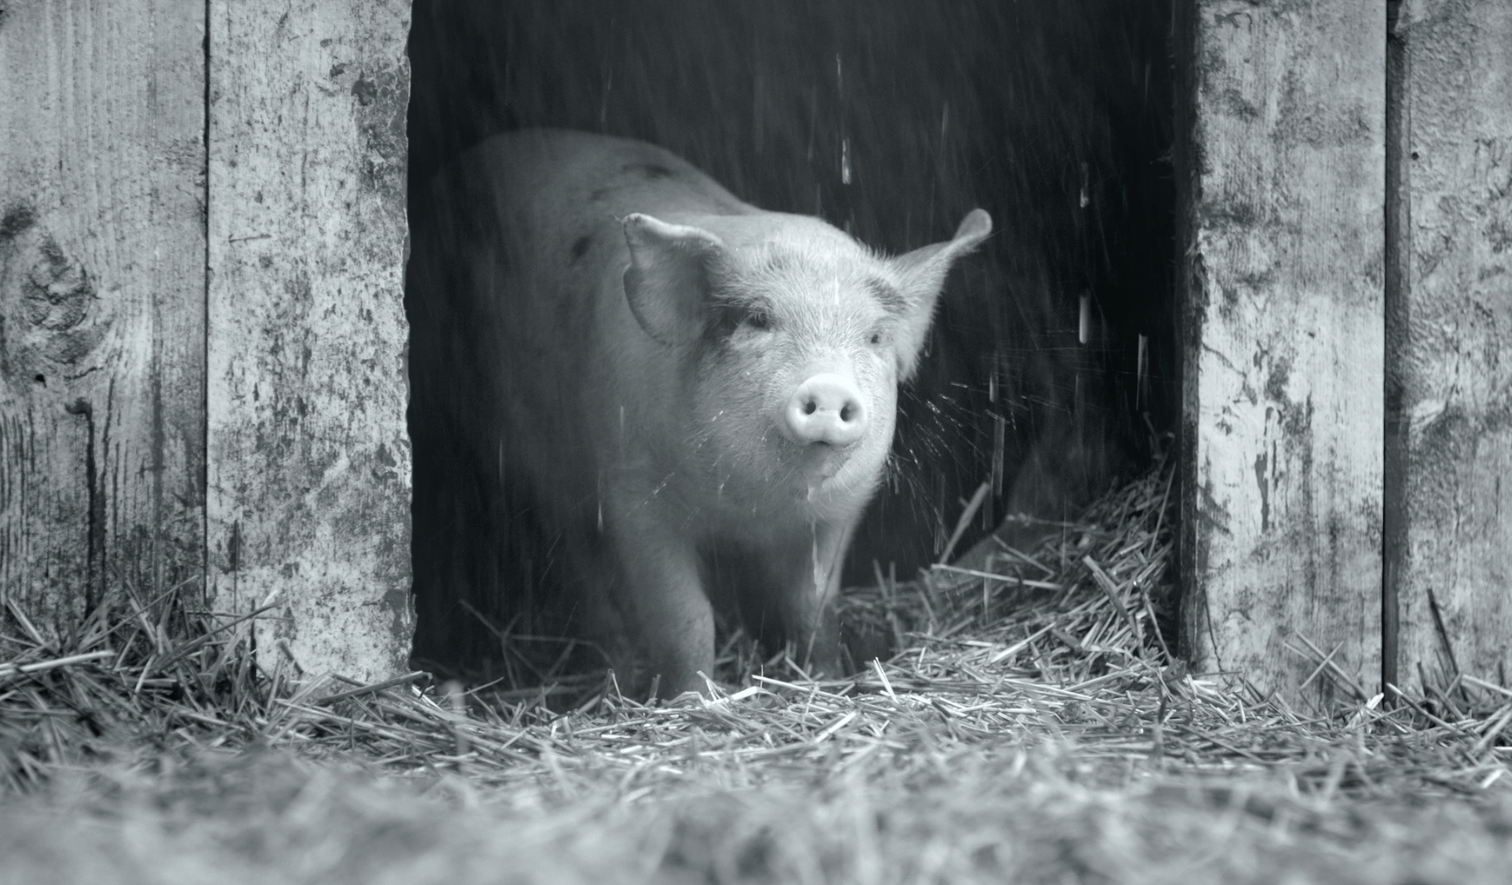 A piglet looks out the door of a shed.